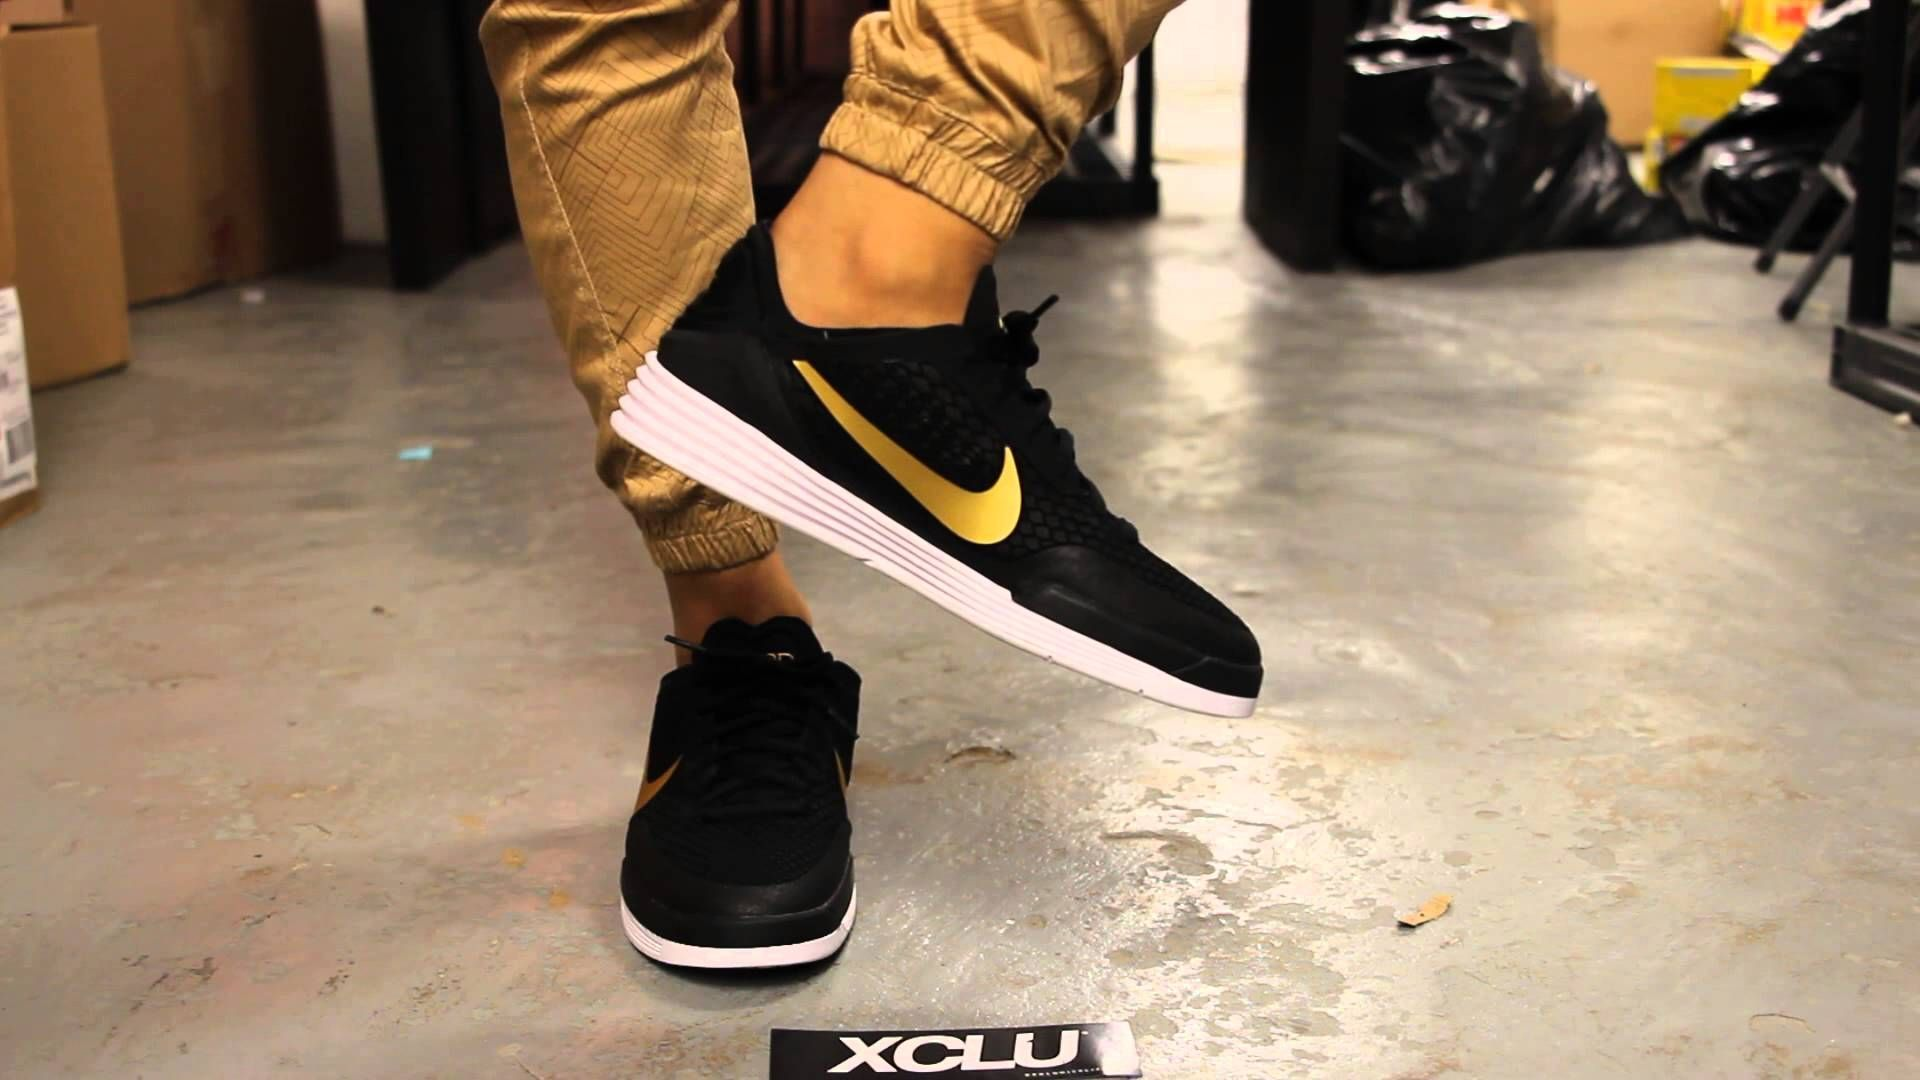 d4cbba6f06364 Nike Paul Rodriguez 8 QS - On Feet Video   Exclucity - YouTube ...